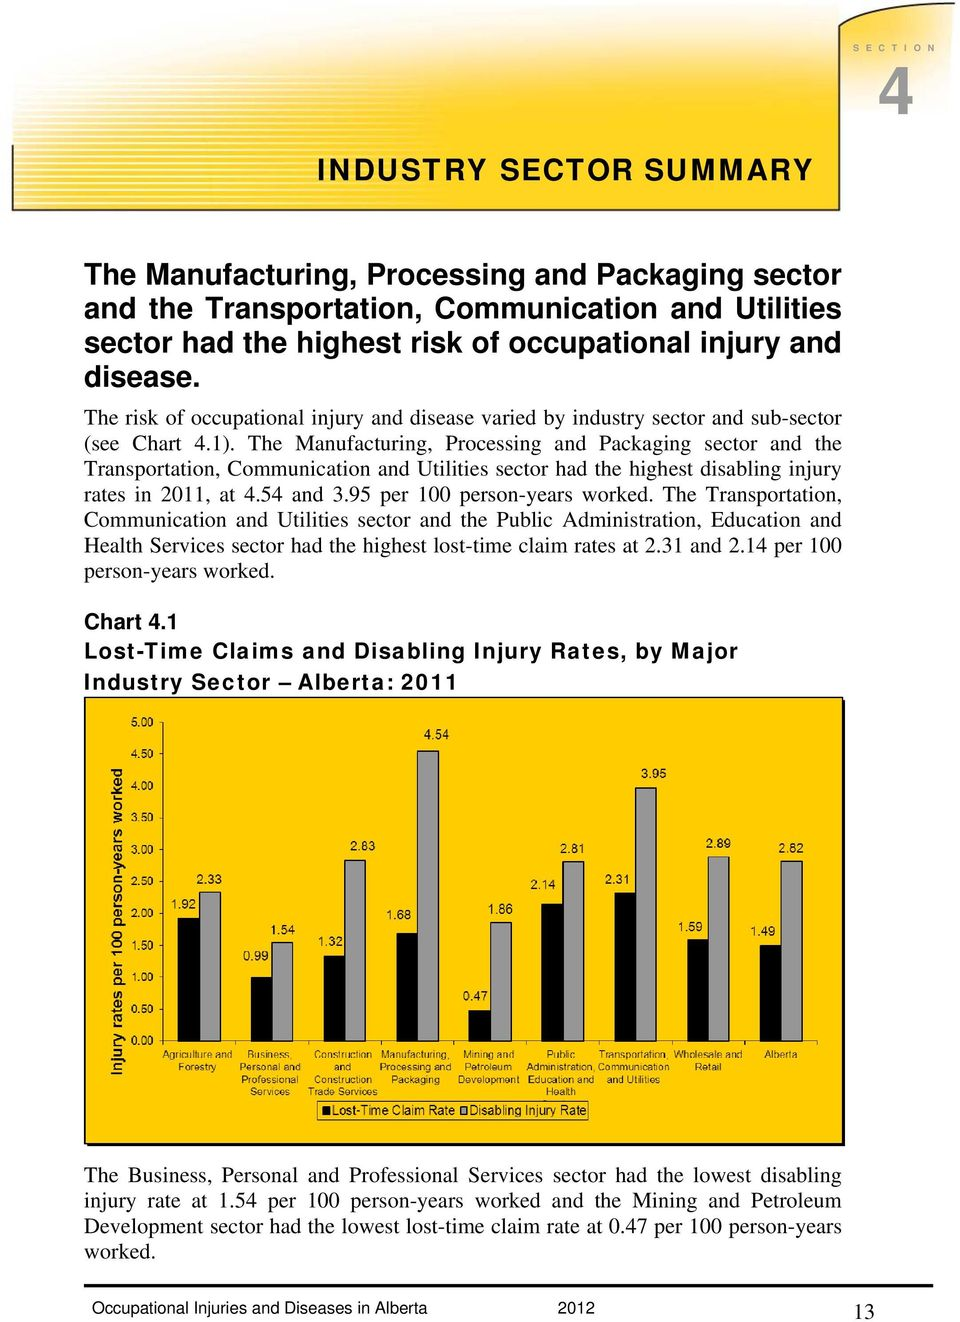 The Manufacturing, Processing and Packaging sector and the Transportation, Communication and Utilities sector had the highest disabling injury rates in 2011, at 4.54 and 3.